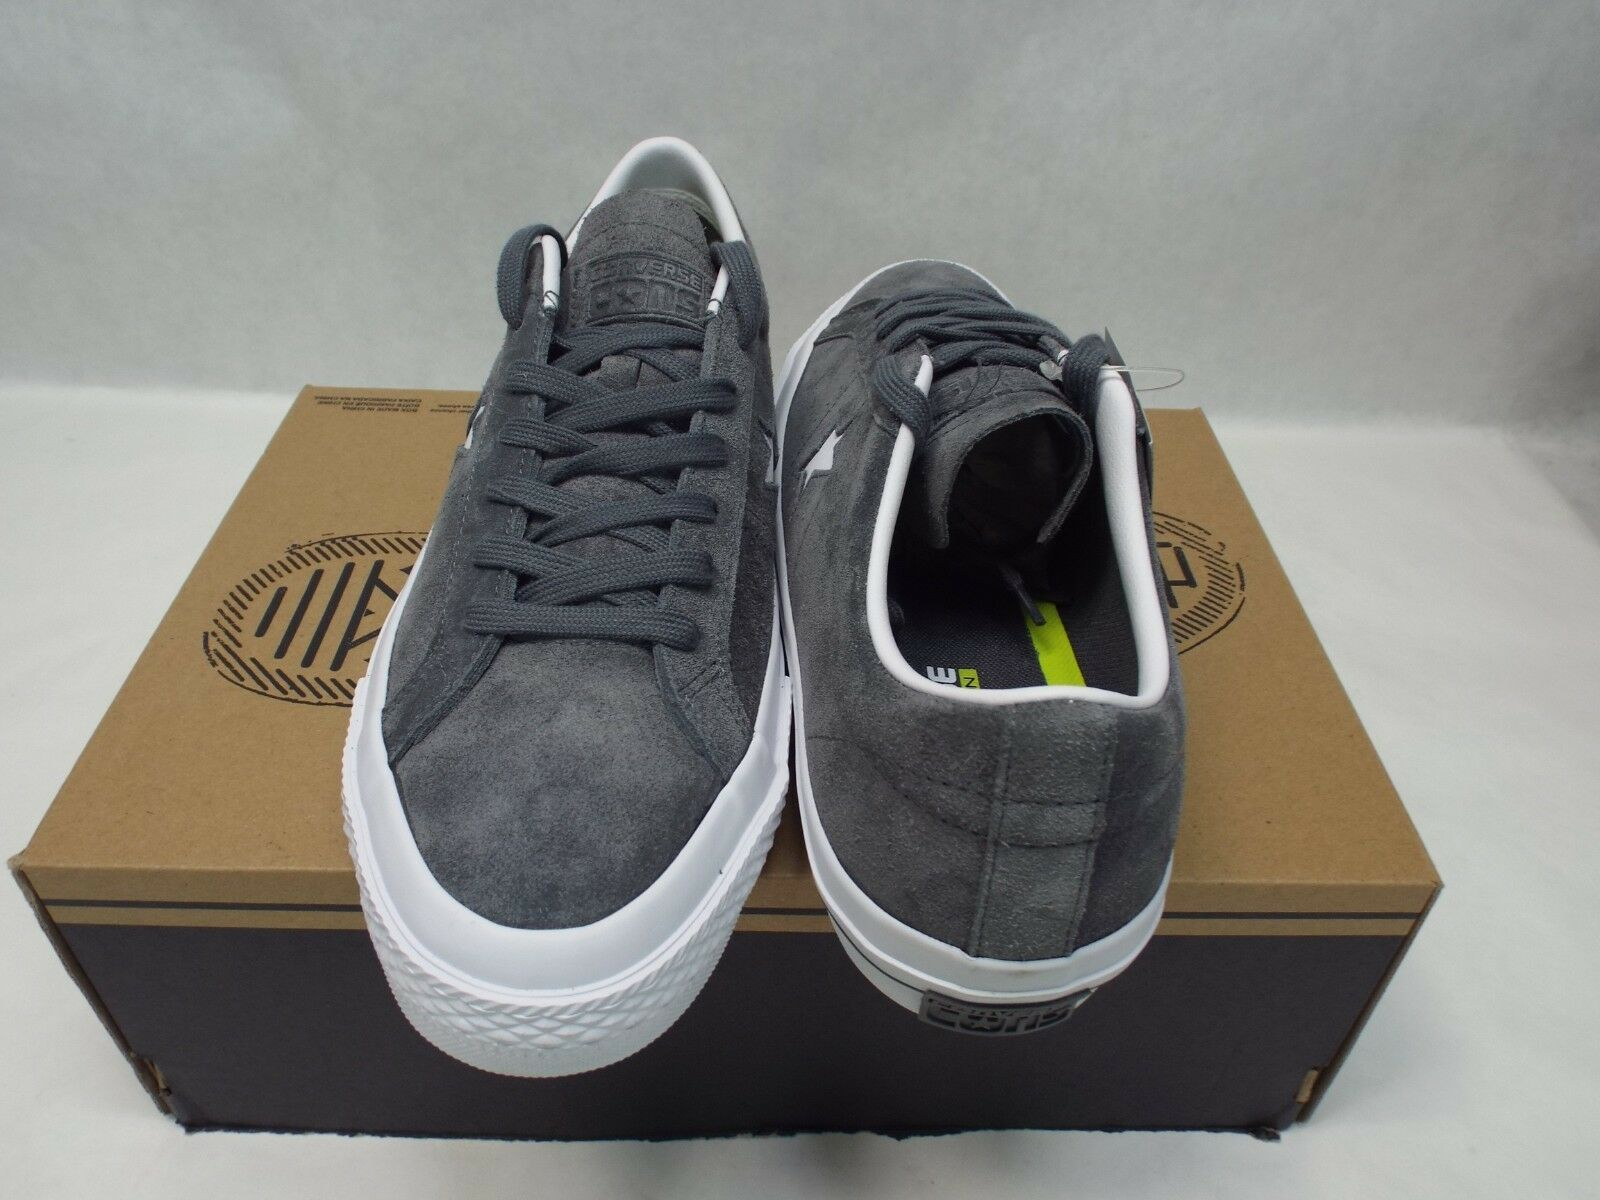 New Mens 13 13 13 Converse One Star Suede OX Thunder grau Leather  80 153962C 363d89